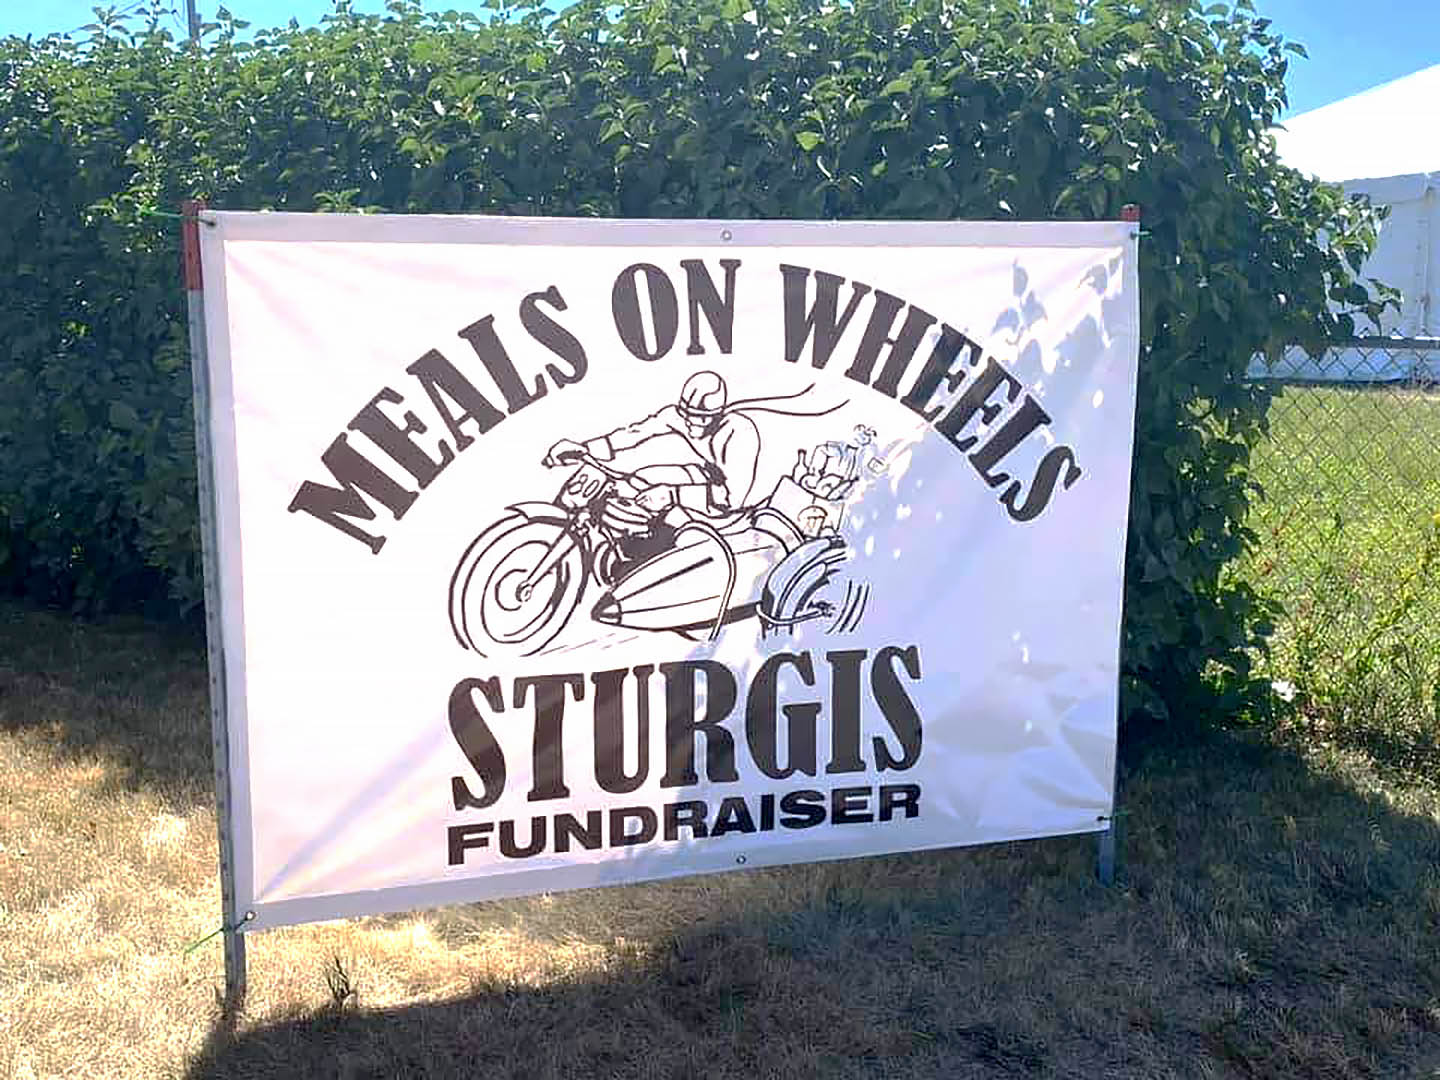 Sturgis Meals On Wheels Fundraiser - 80th Annual in 2020